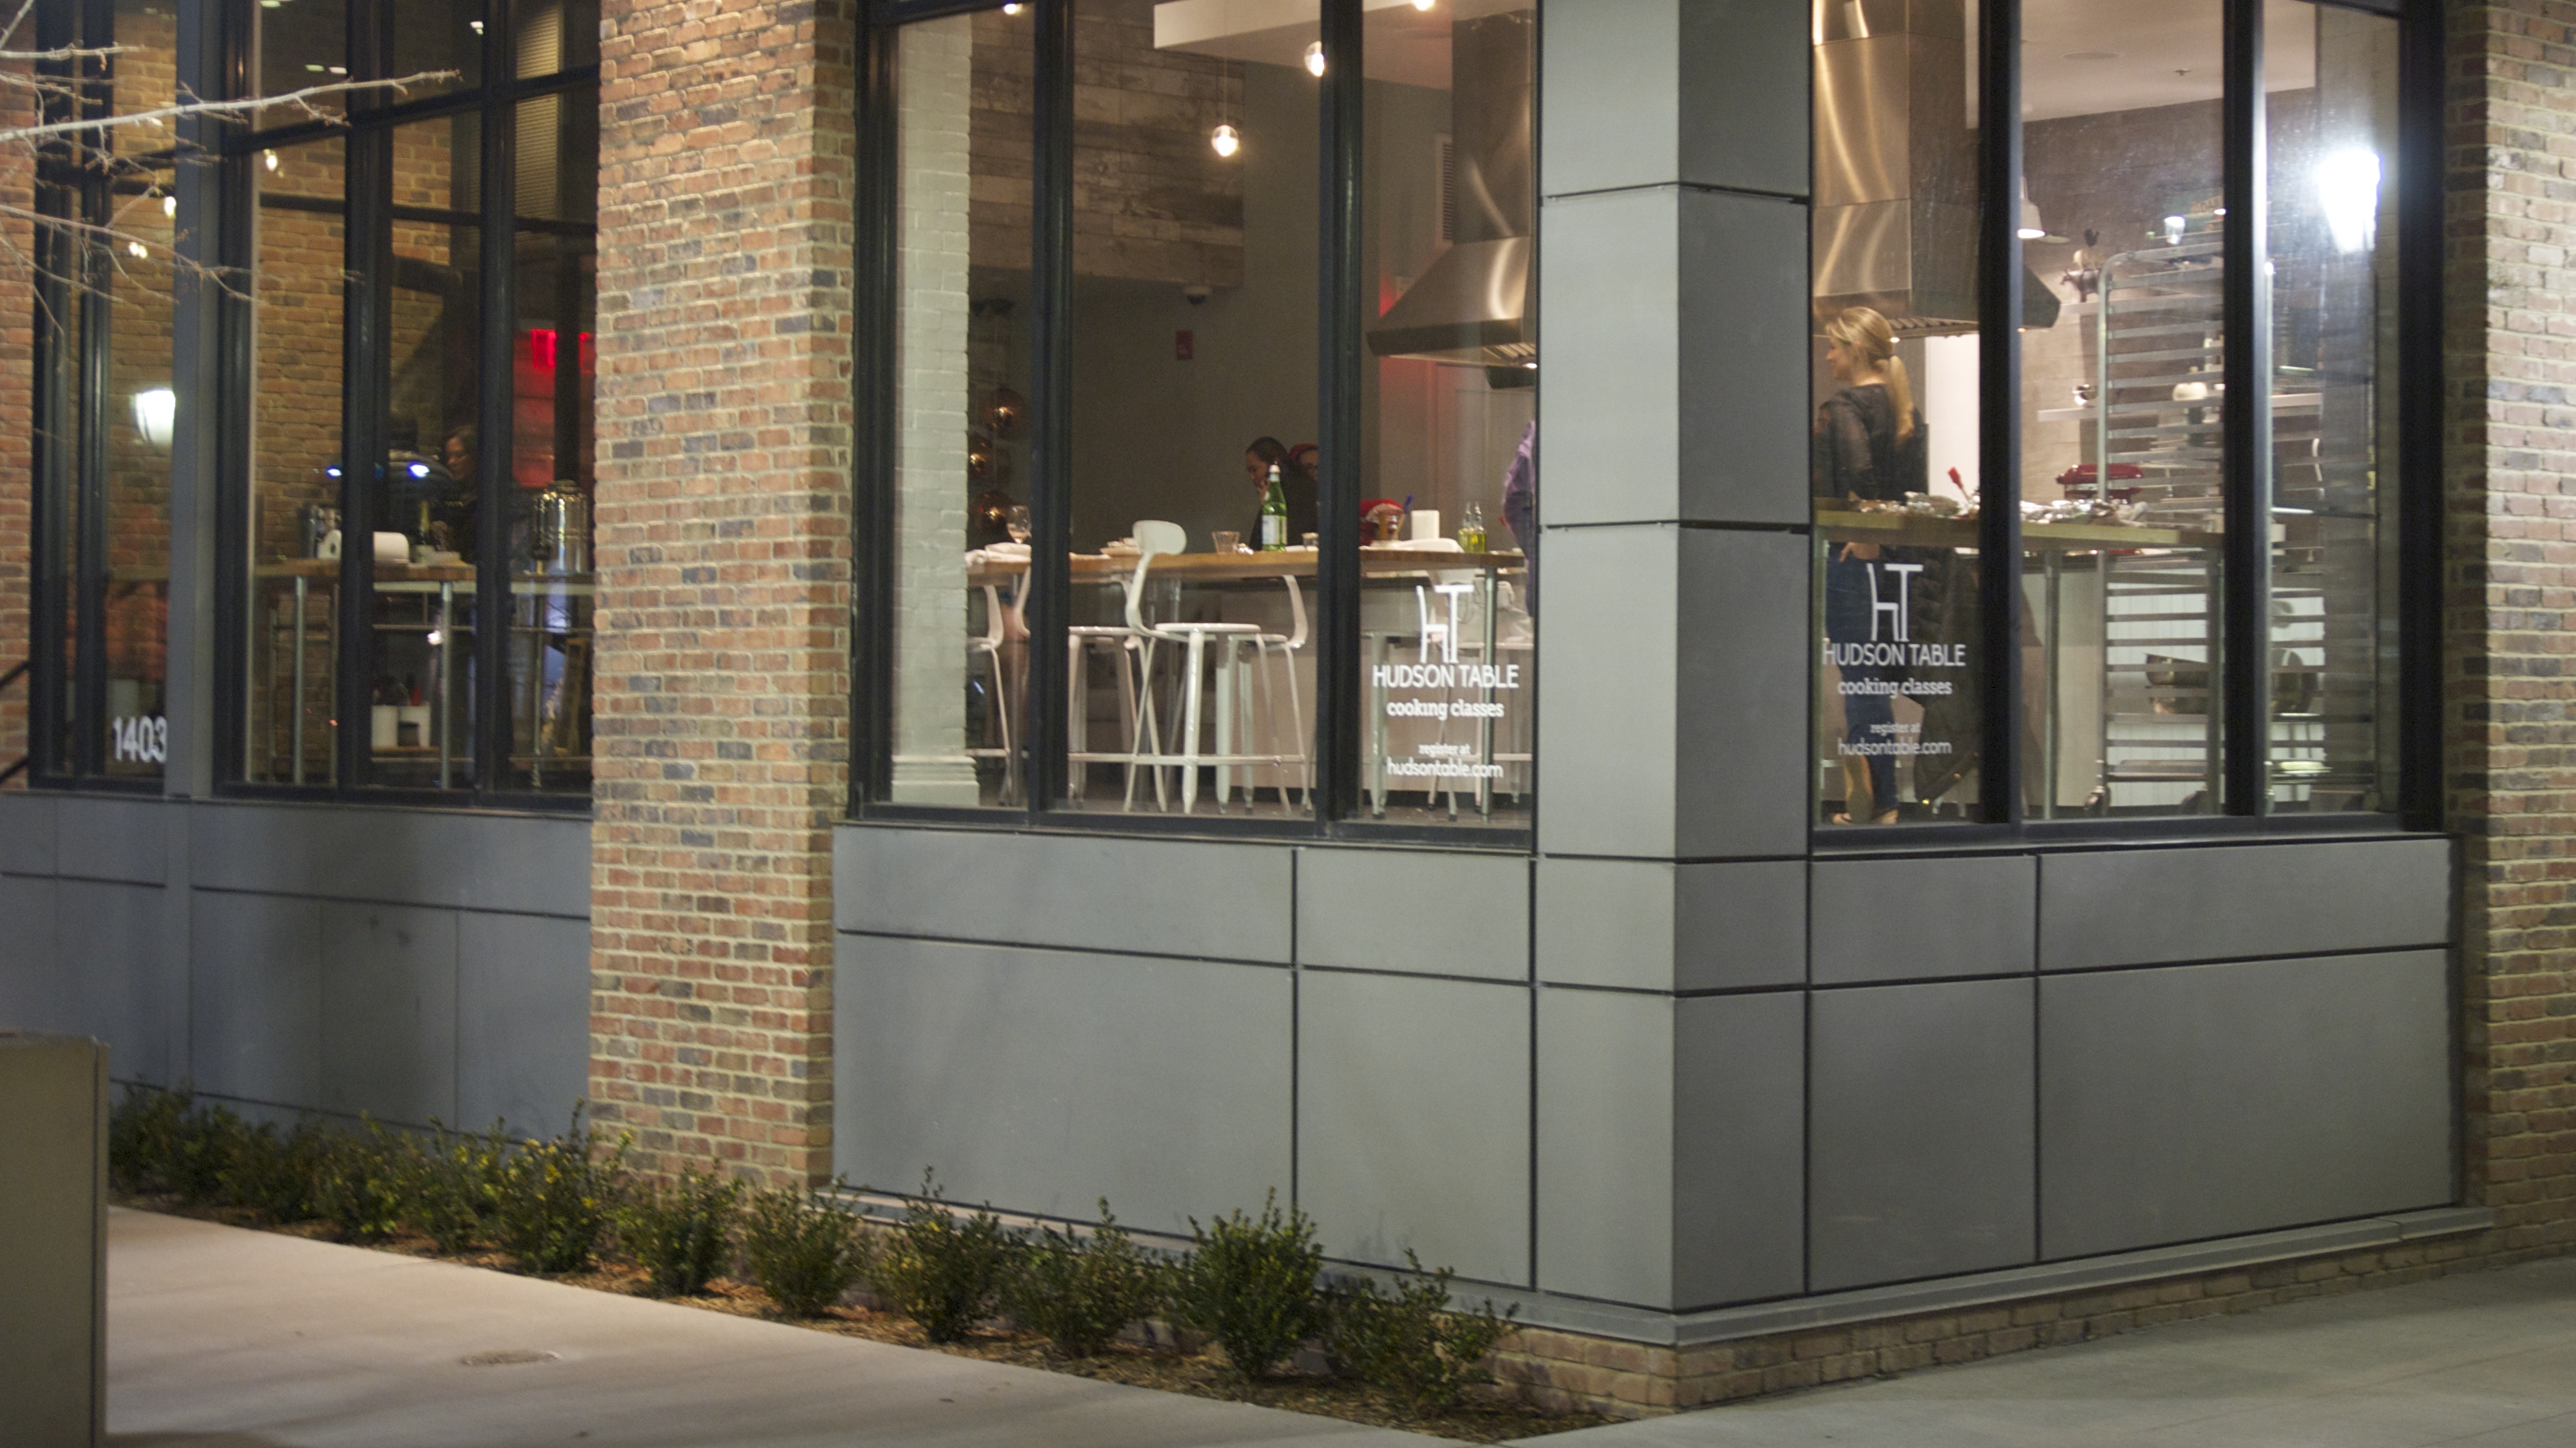 "<a href=""http://hudsontable.com"">Hudson Table</a>, a recreational cooking school and event space, opened recently at the corner of 14th and Clinton Streets."